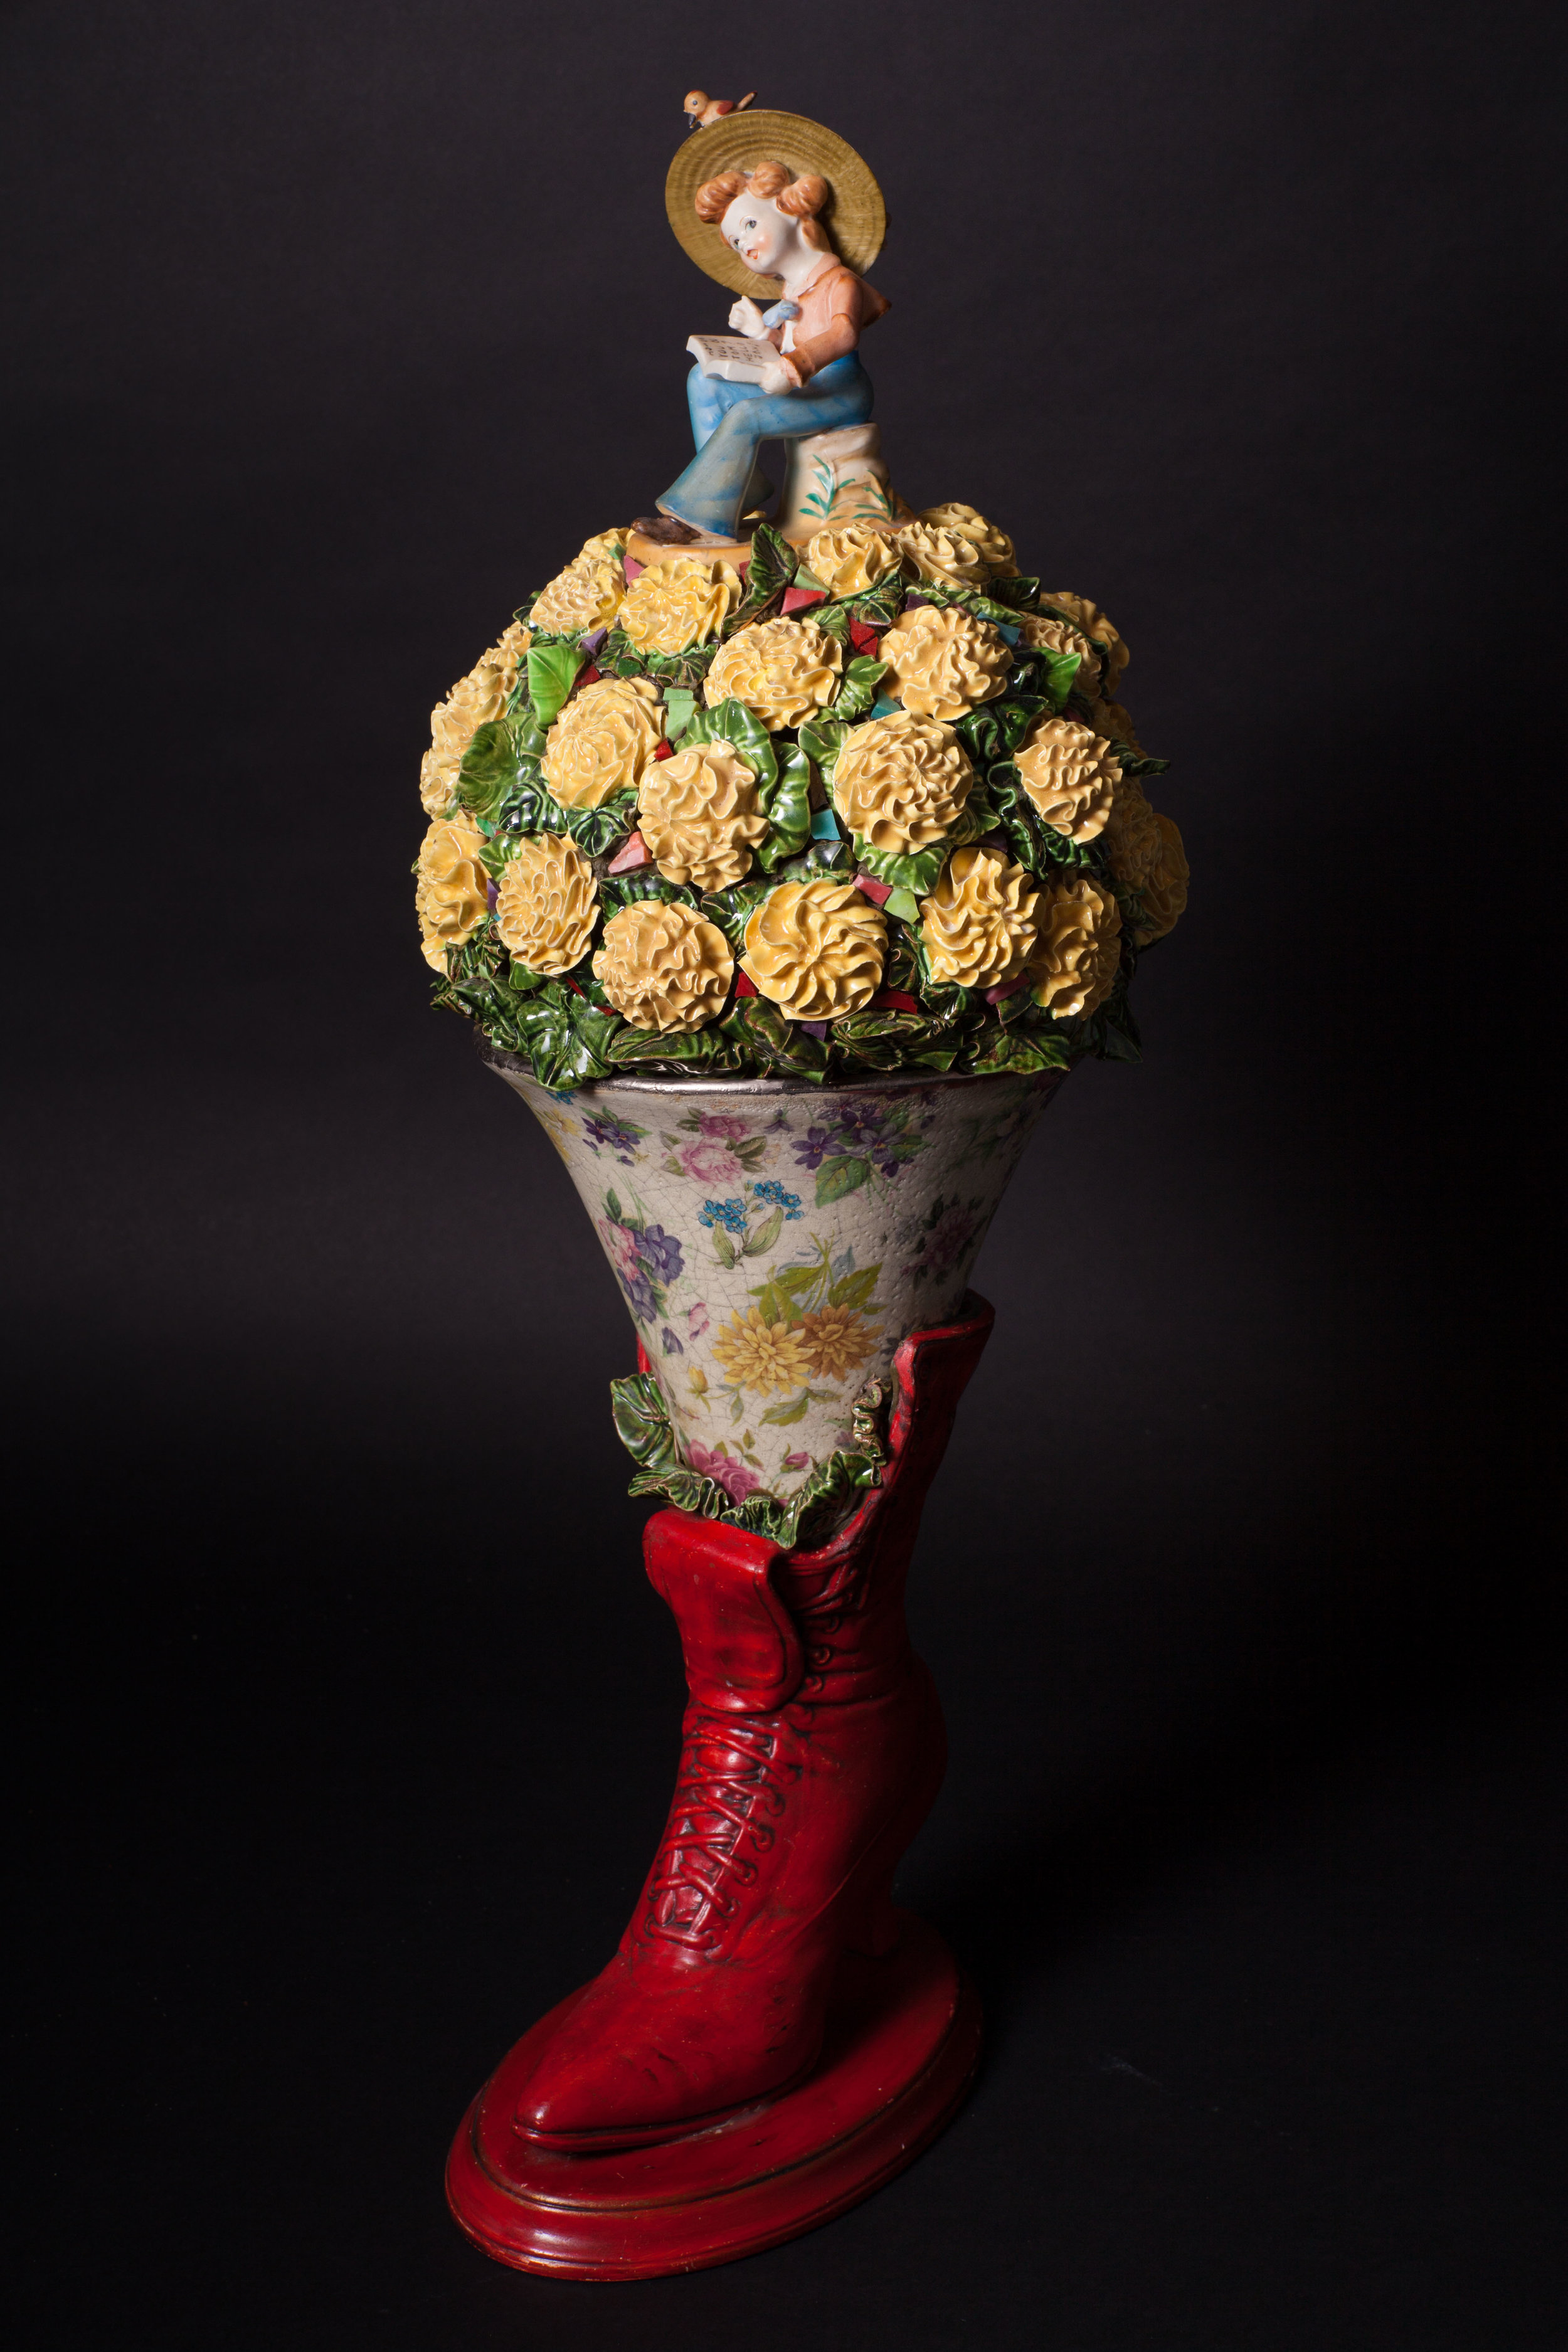 Red Boot Bouquet